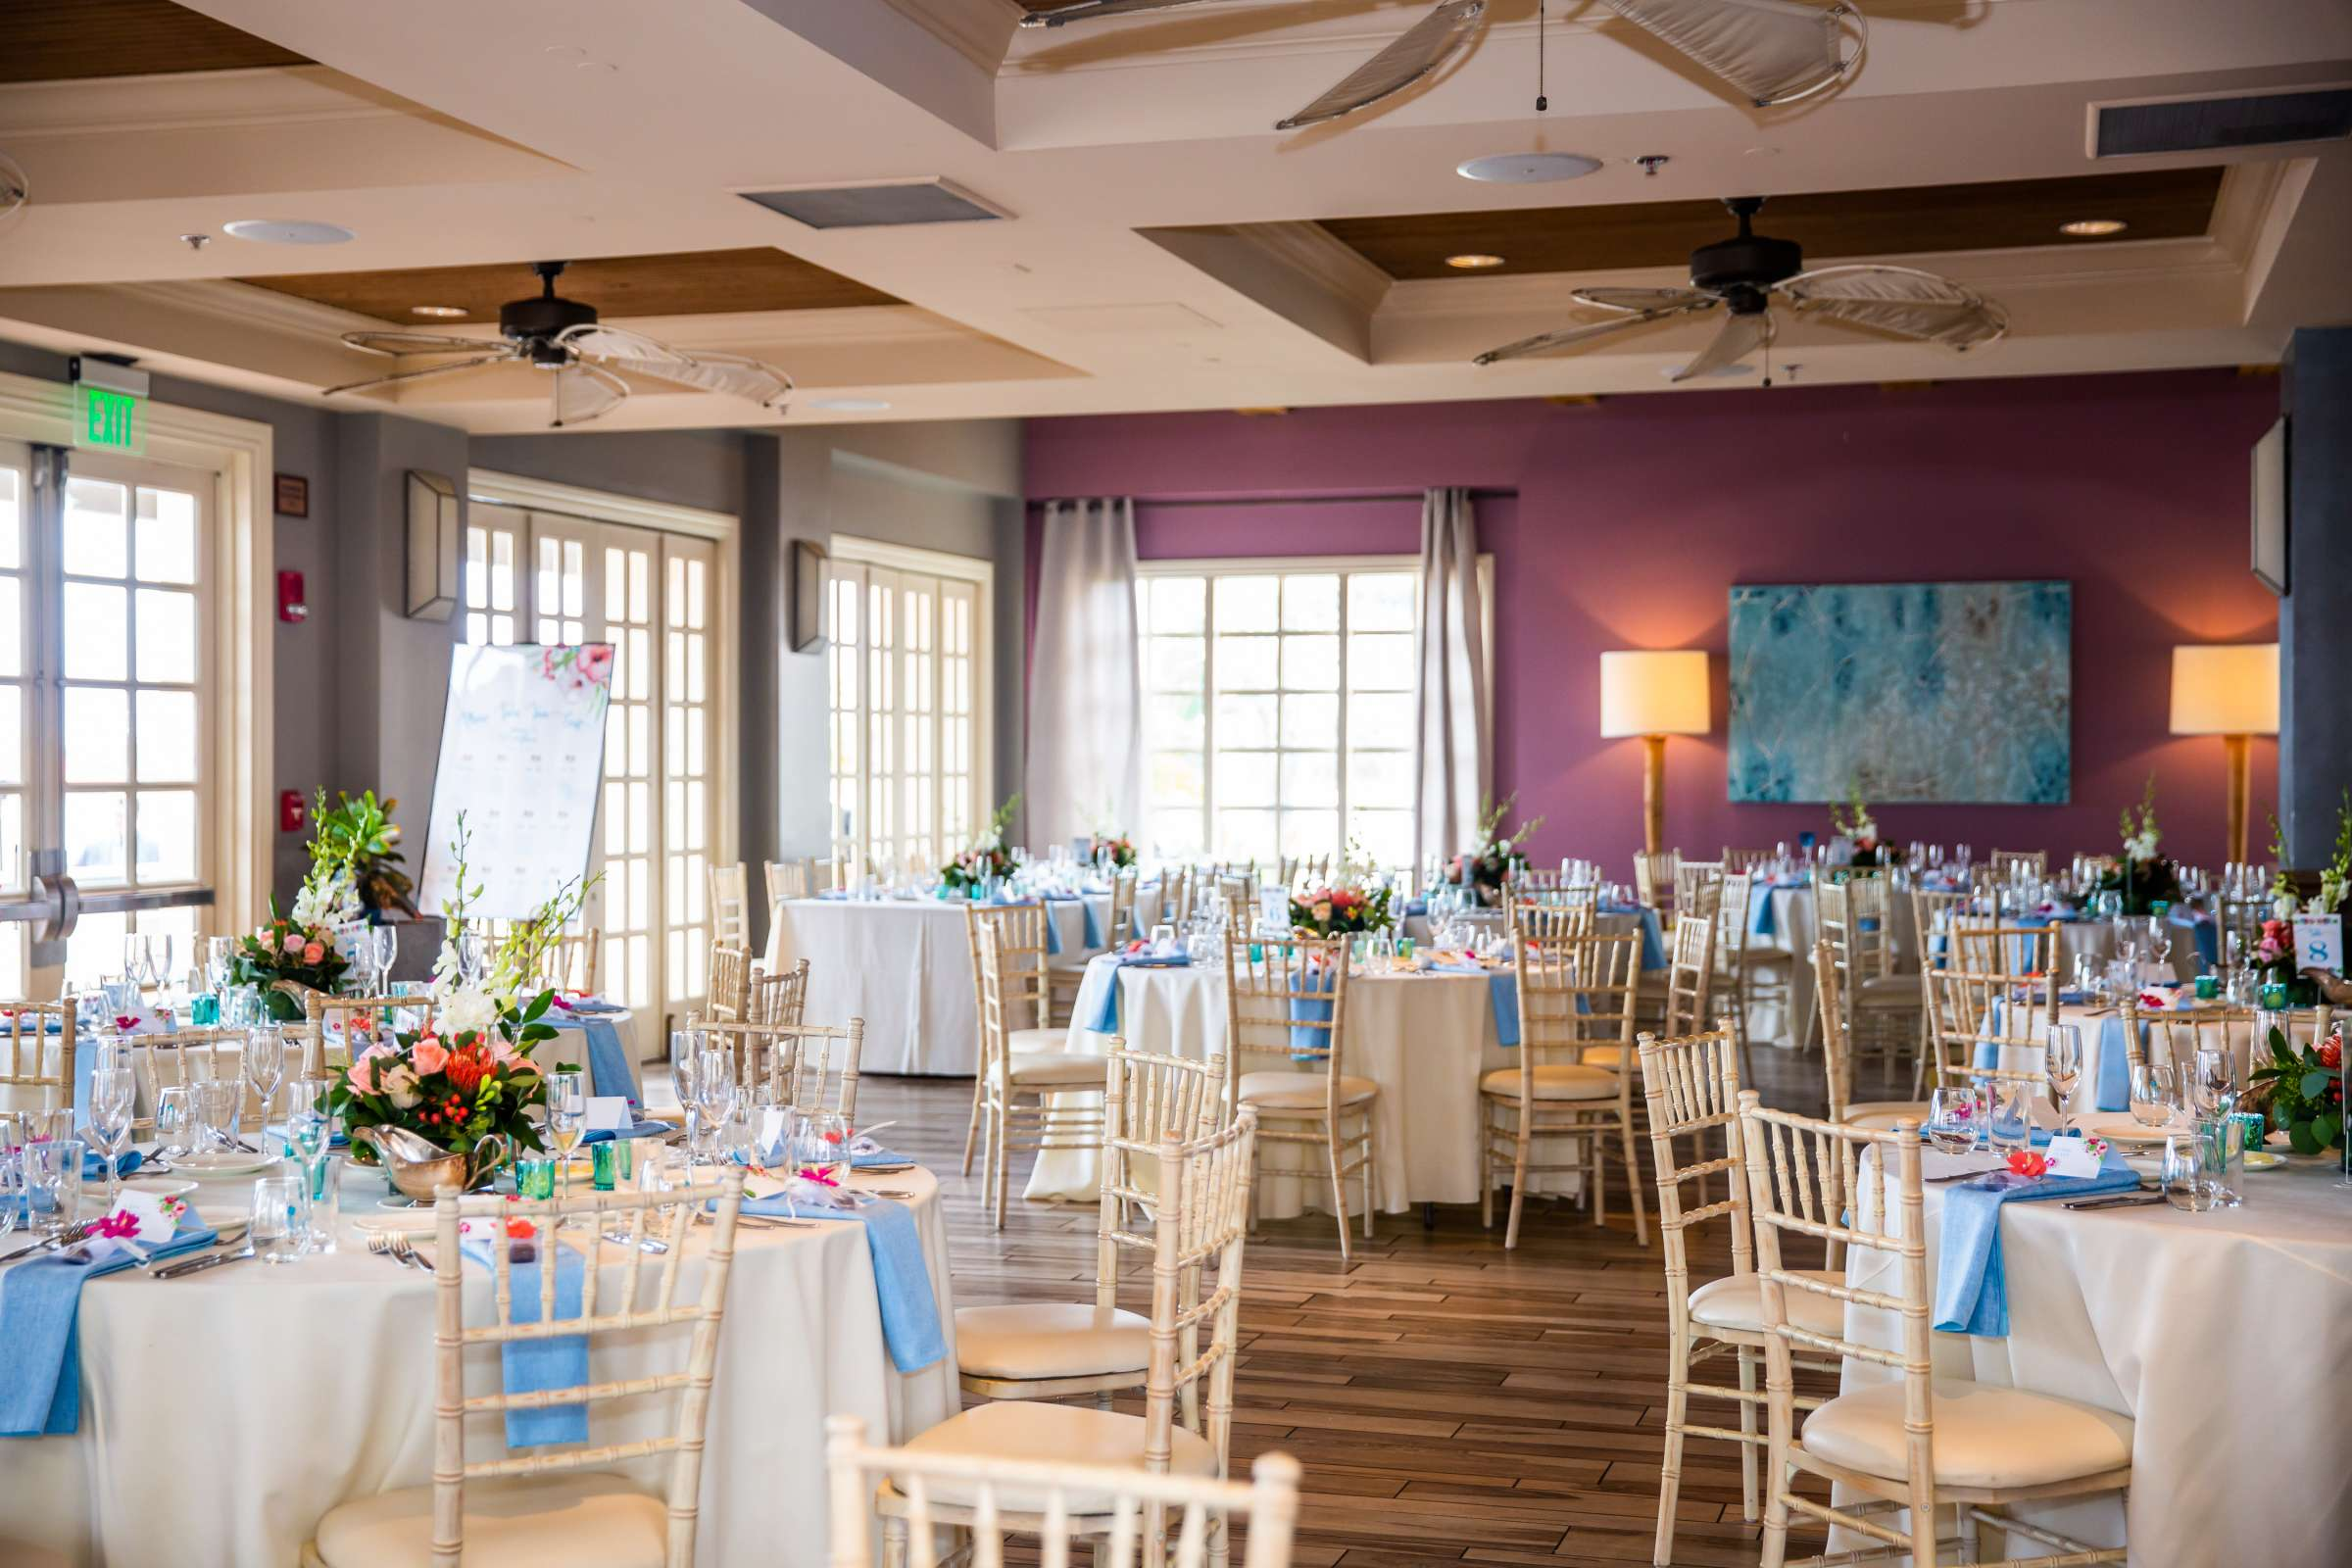 San Diego Mission Bay Resort Wedding coordinated by Cafe Au Love, Lauren and Adam Wedding Photo #168 by True Photography